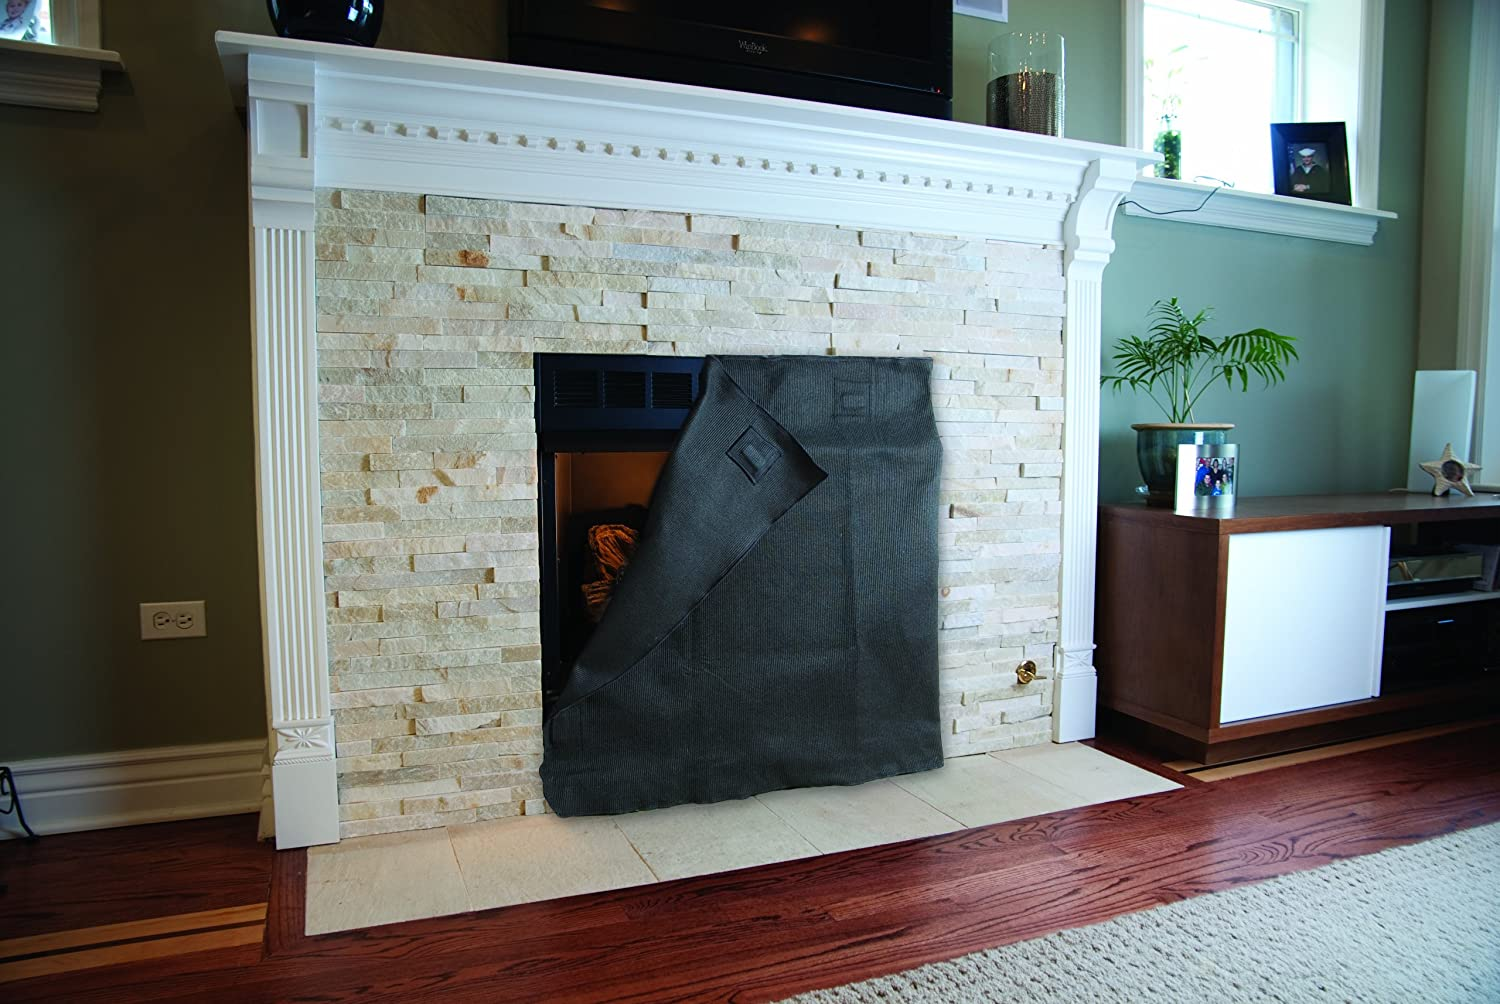 amazon com fireplace blocker 32 inch h x 42 inch w blanket